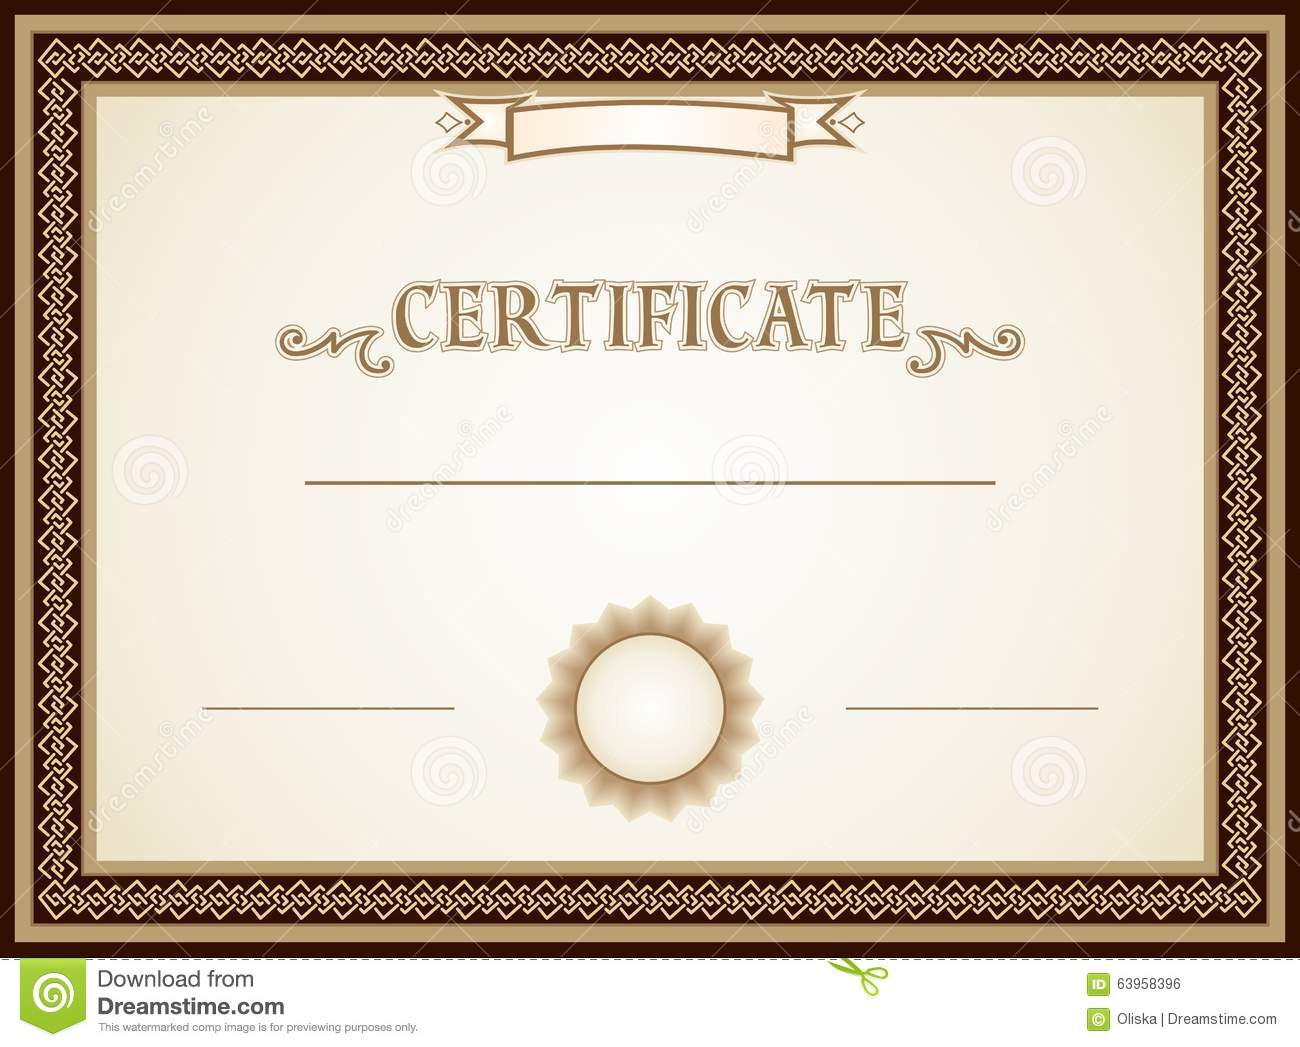 Certificate design stock vector. Image of background ...